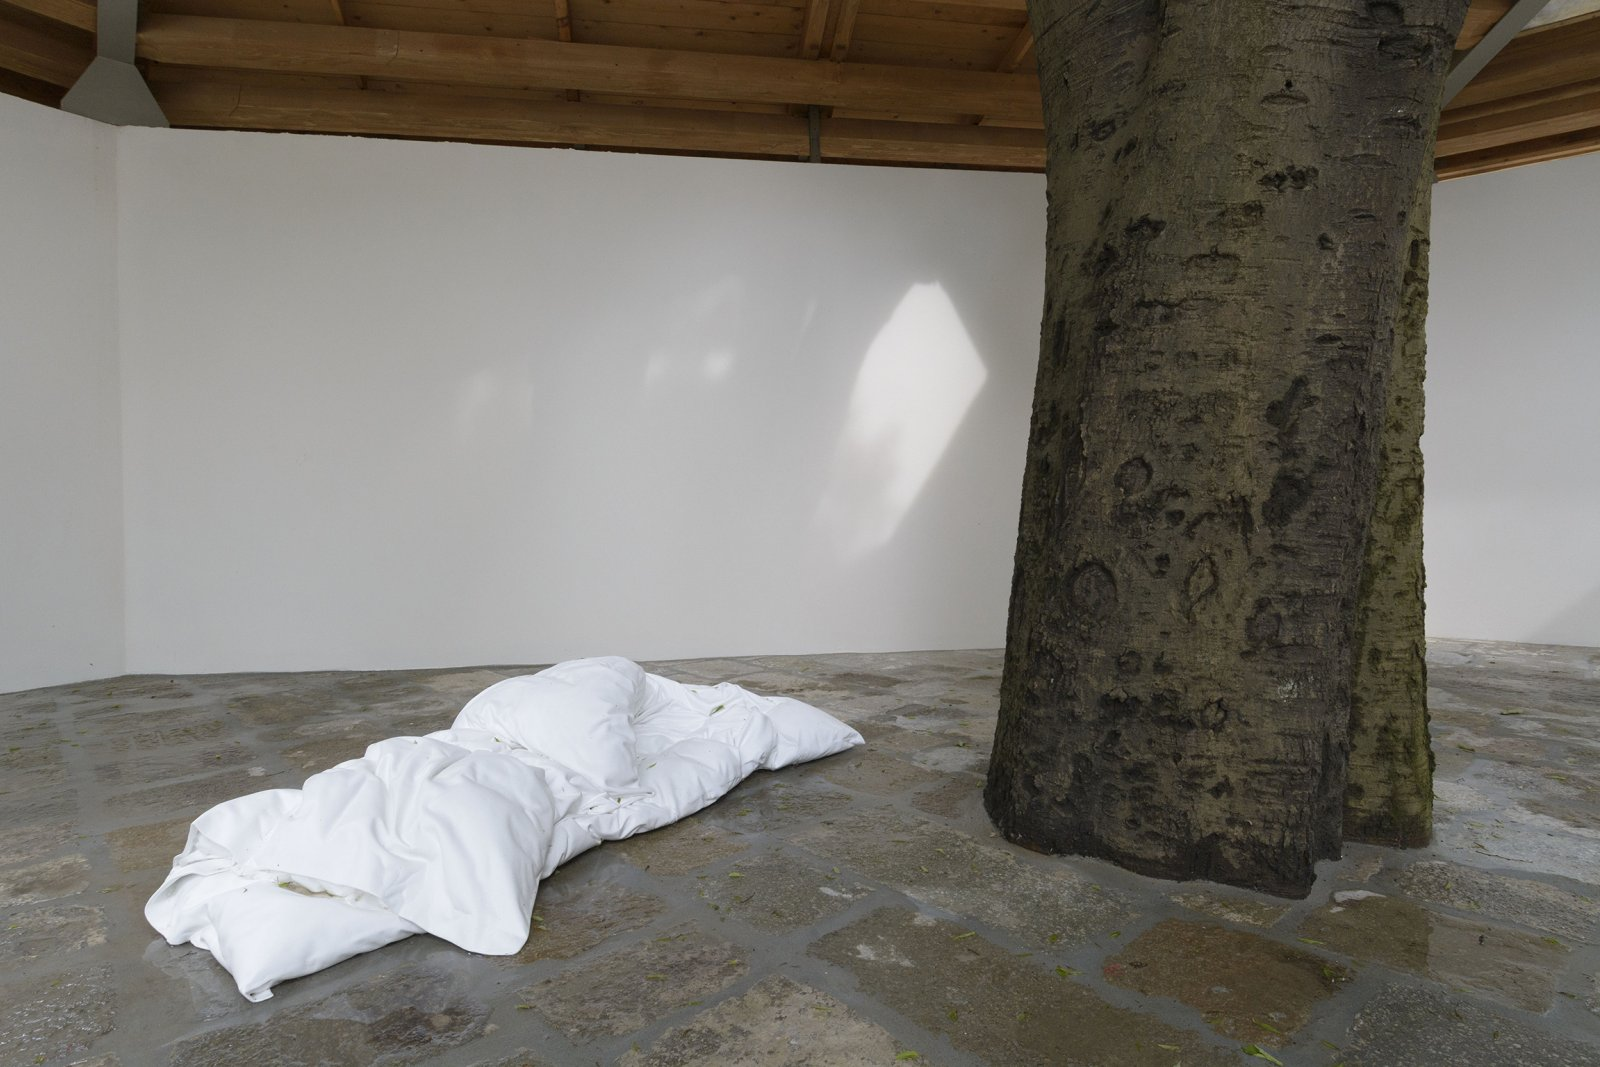 Geoffrey Farmer, Duvet, 2017, cast aluminum, waterworks, 28 x 47 x 79 in. (70 x 120 x 200 cm). Installation view, A way out of the mirror, Canada Pavilion, 57th Venice Biennale, Venice, Italy